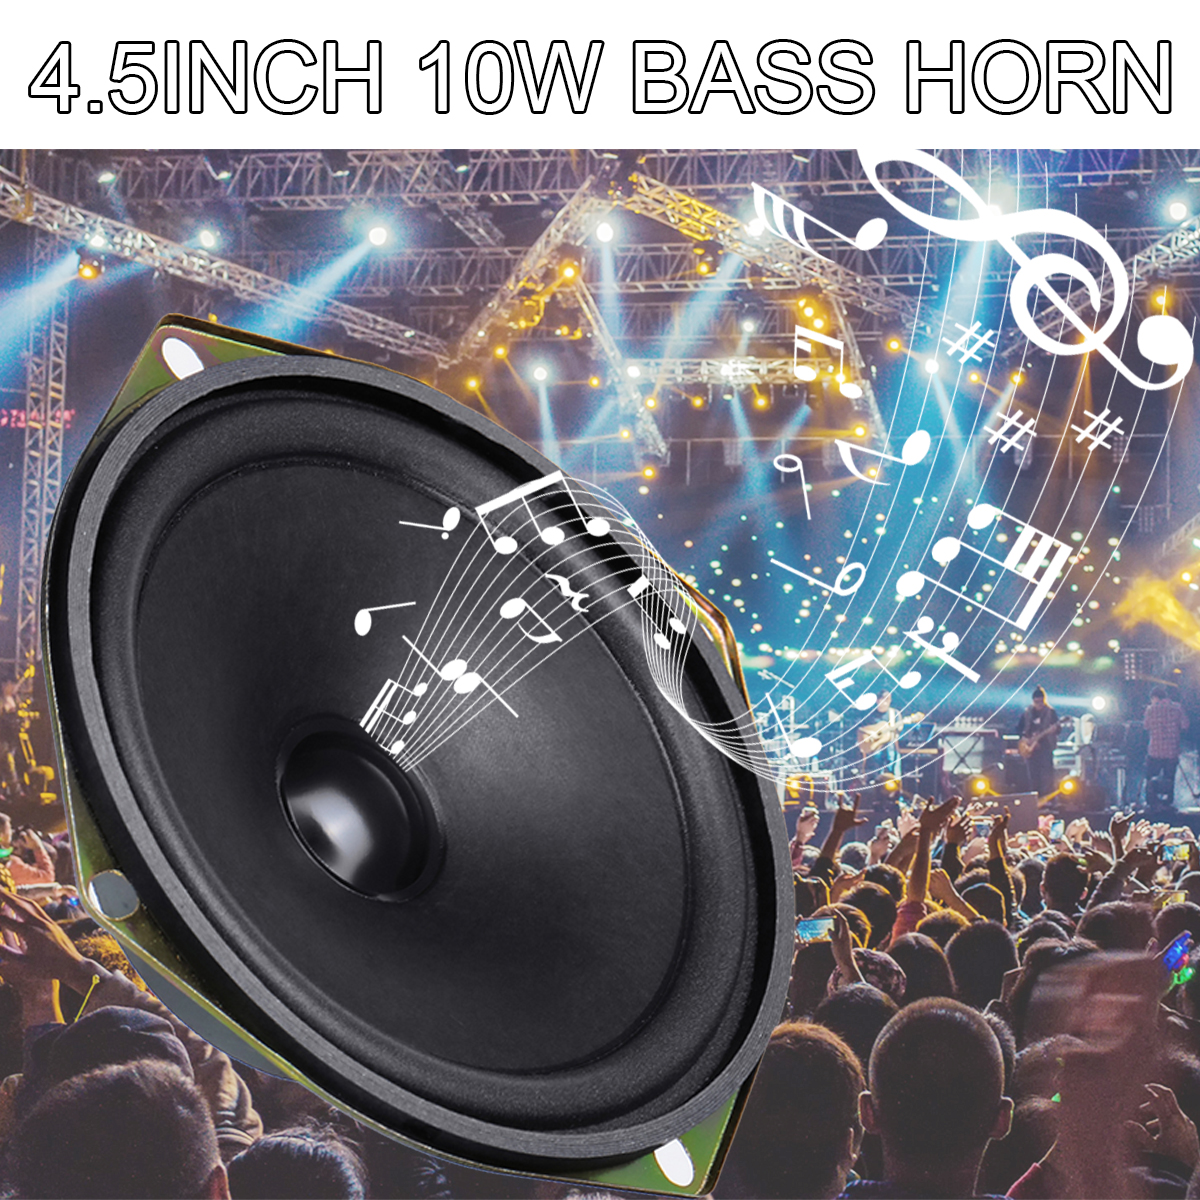 2PCS 10W 4.5 Inch Speaker Accessories Unit Box DIY Bass Horn Speaker Accessories Subwoofer Loudspeaker Stereo Strong Bass Horn